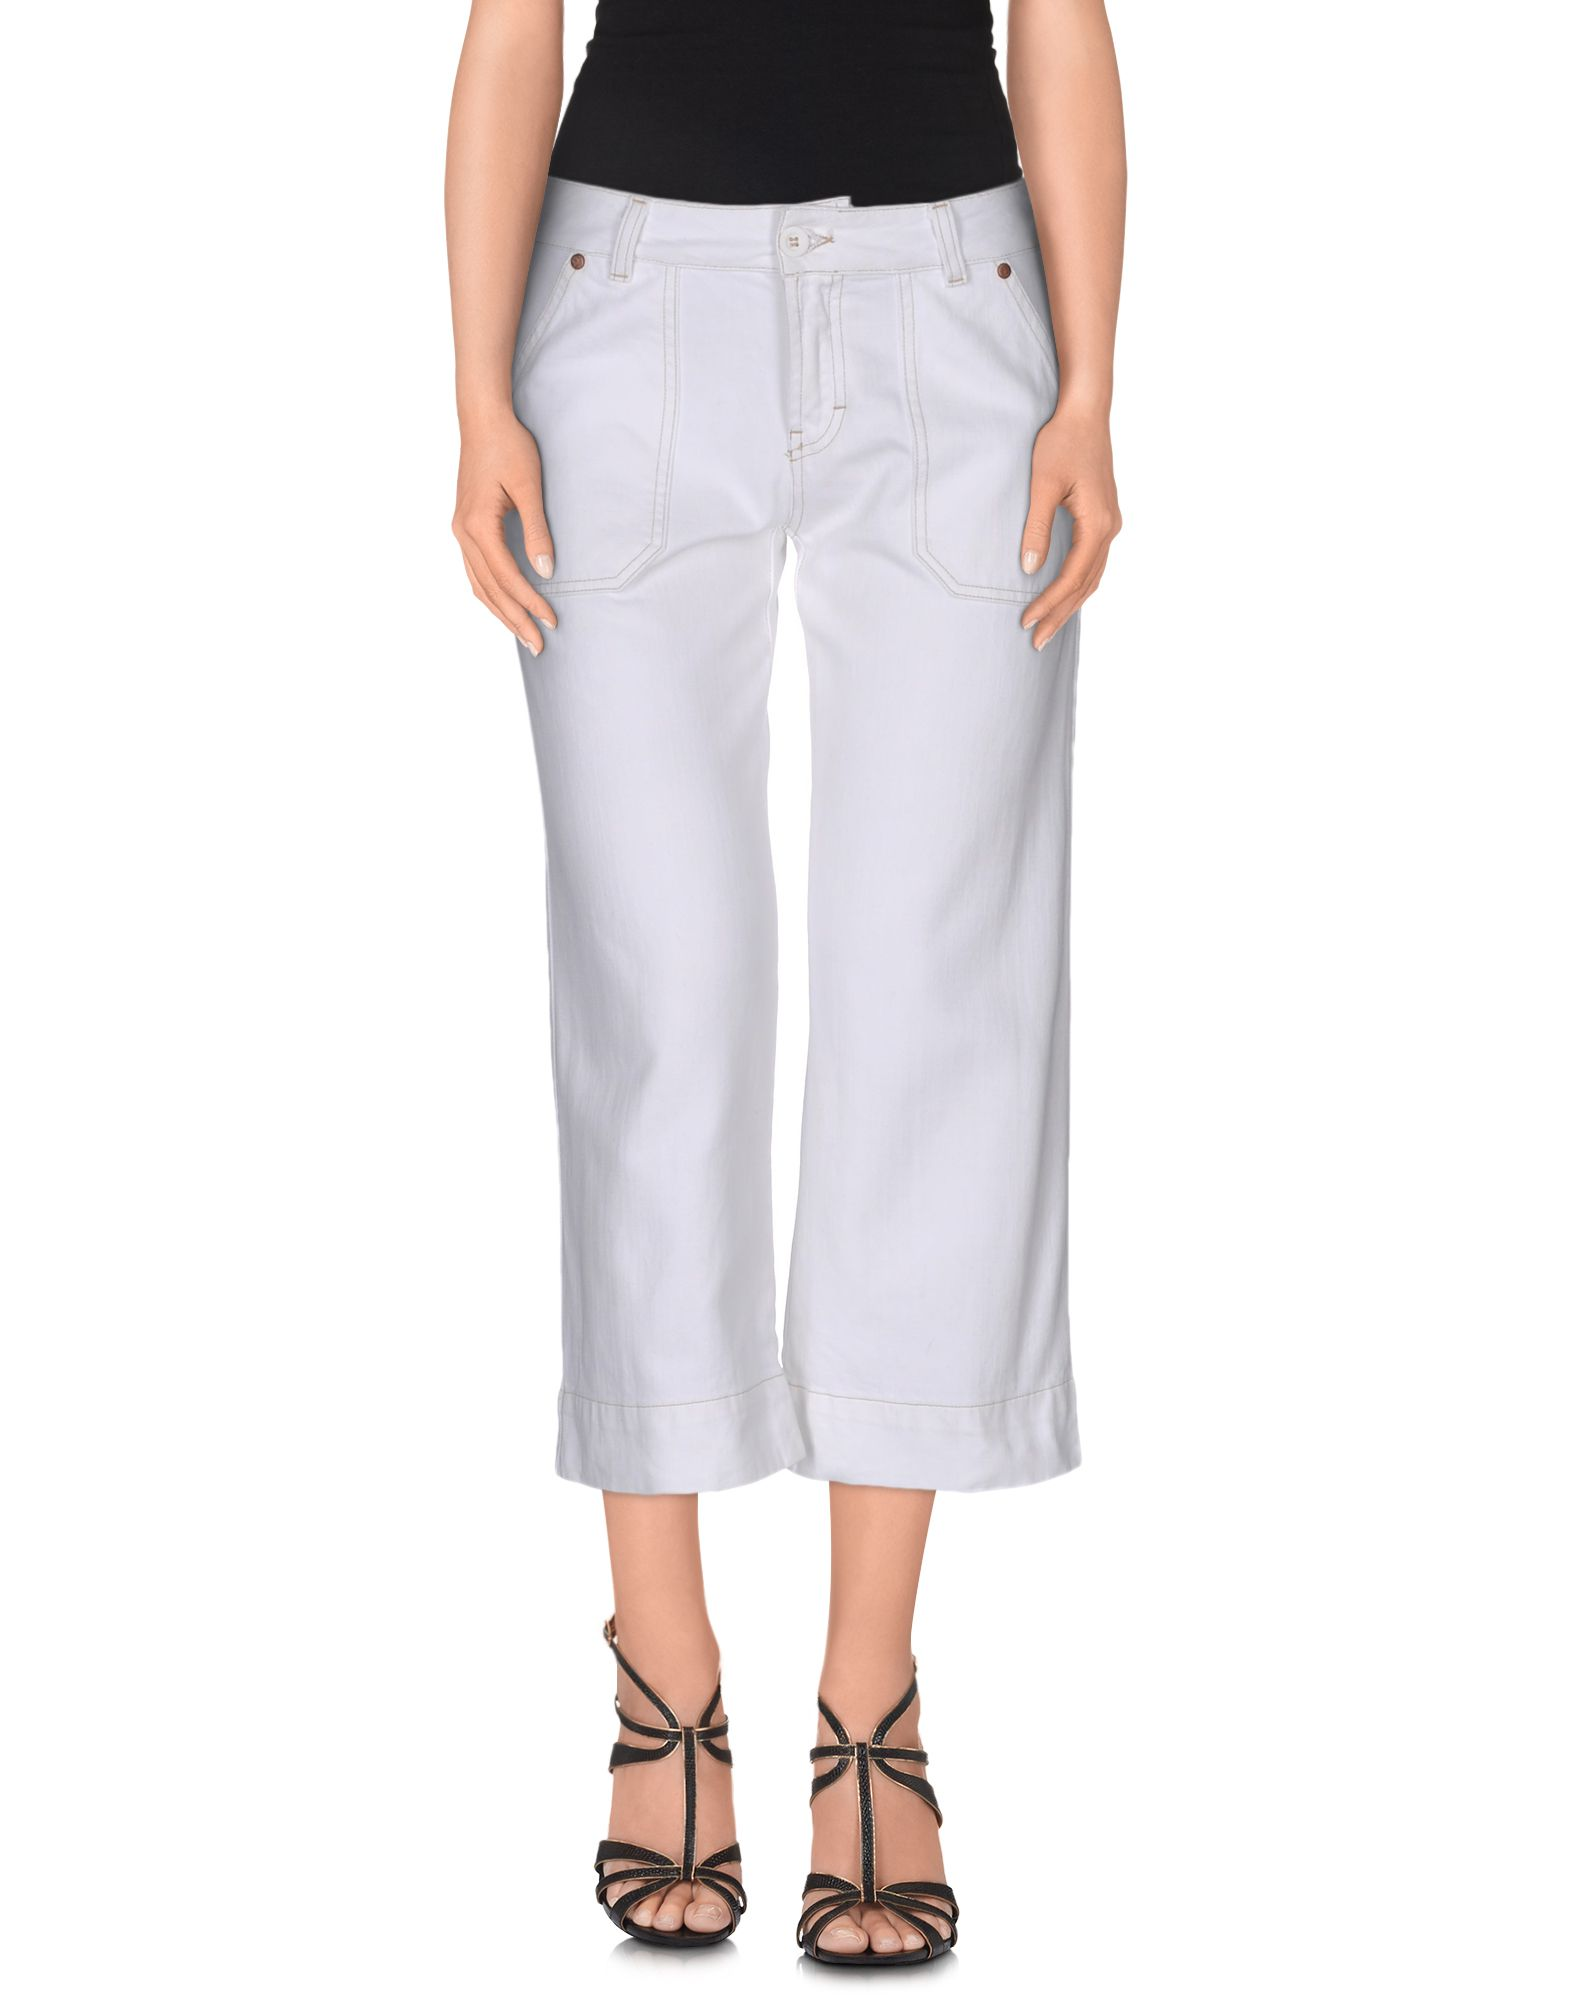 DKNY JEANS Jeans